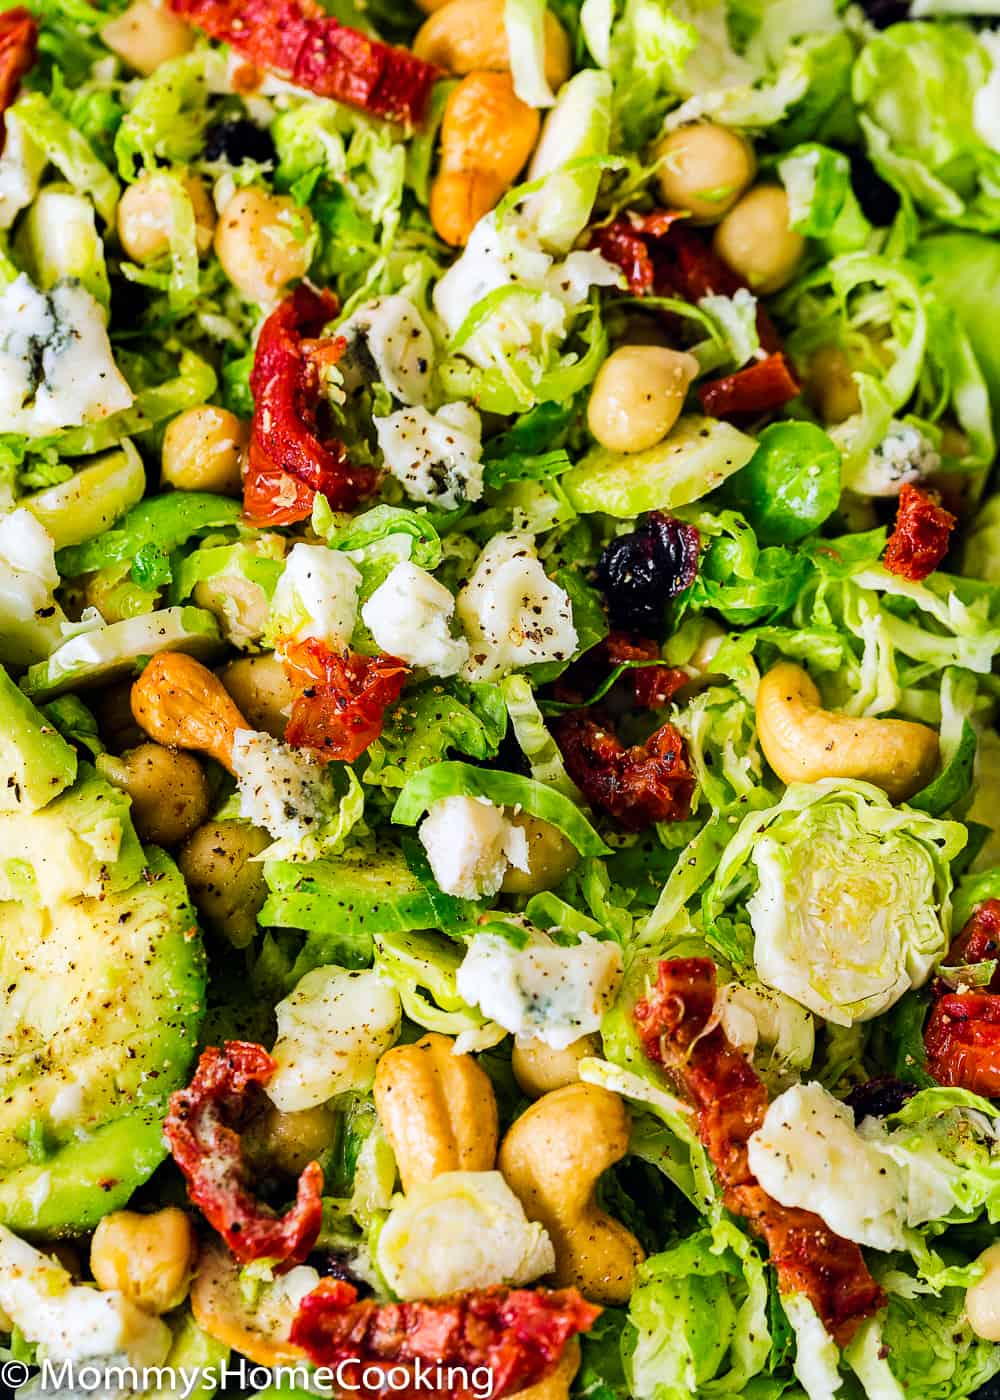 Easy Shaved Brussel Sprout Salad with Cranberries close-up